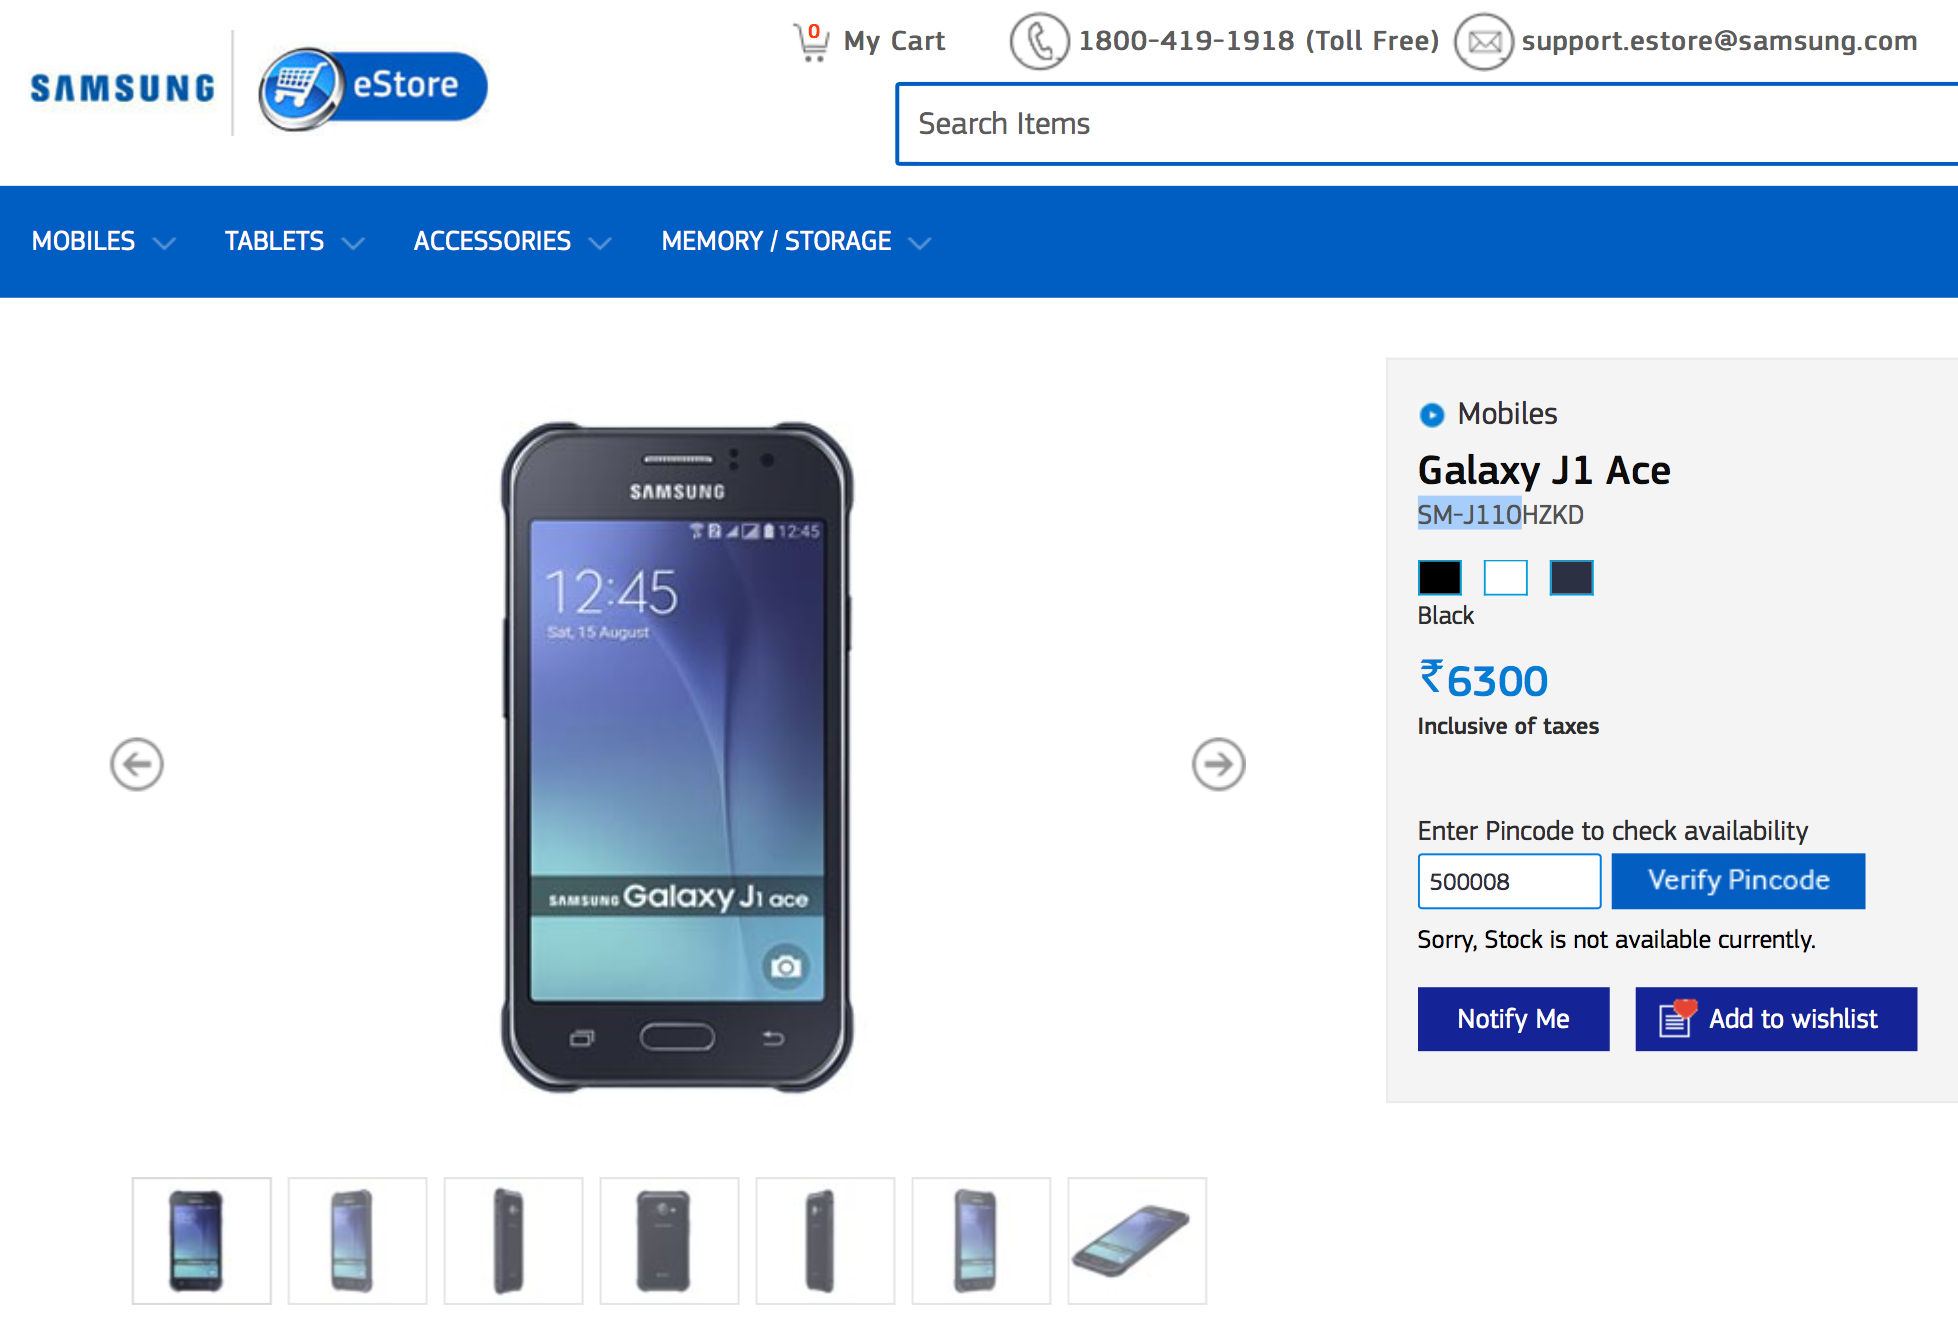 Samsung Galaxy J1 Ace Now Available In India - Sammobile